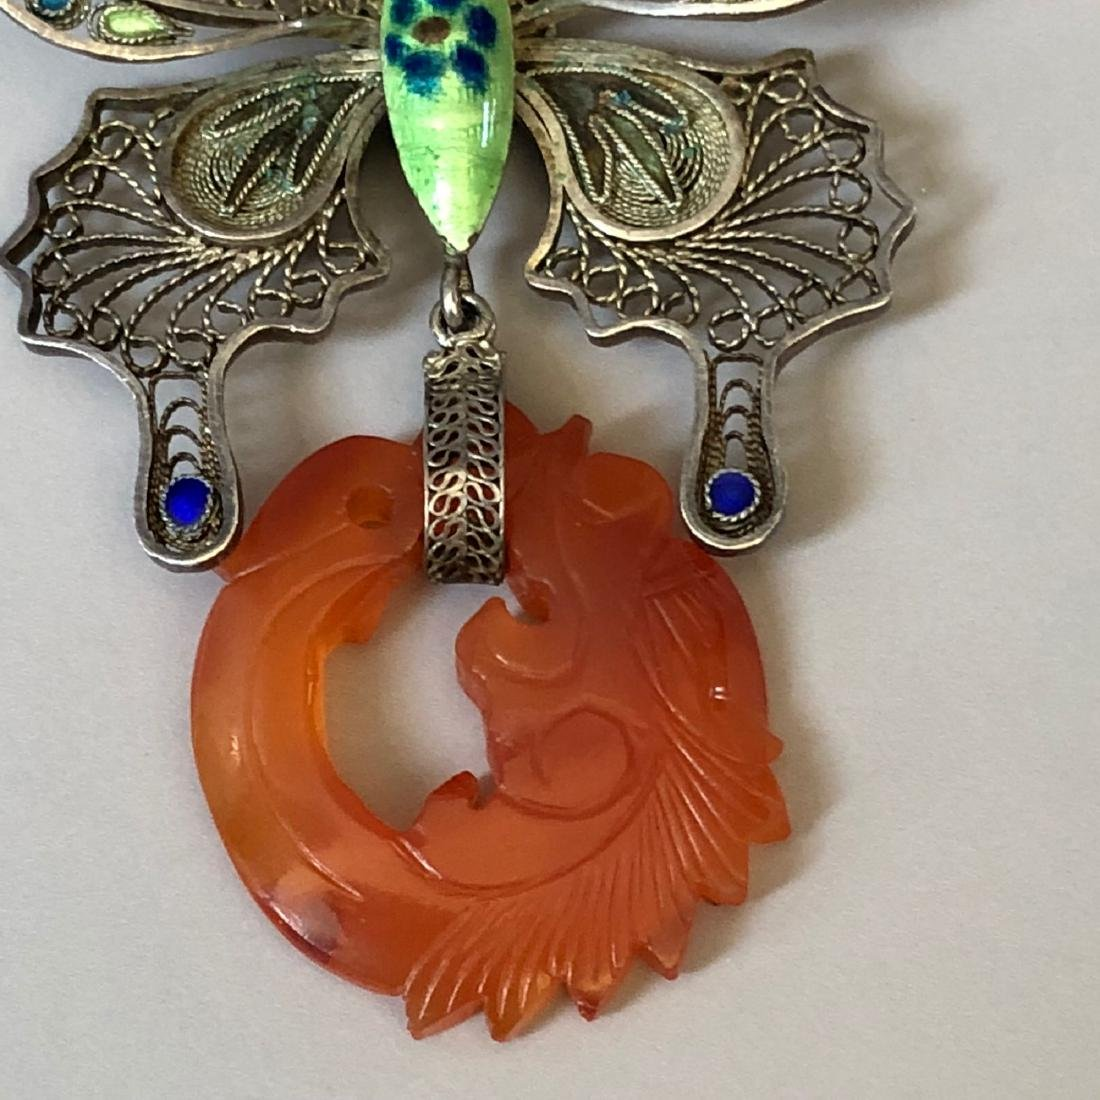 A FINE SILVER BUTTERFLY AND AGATE PIN - 3